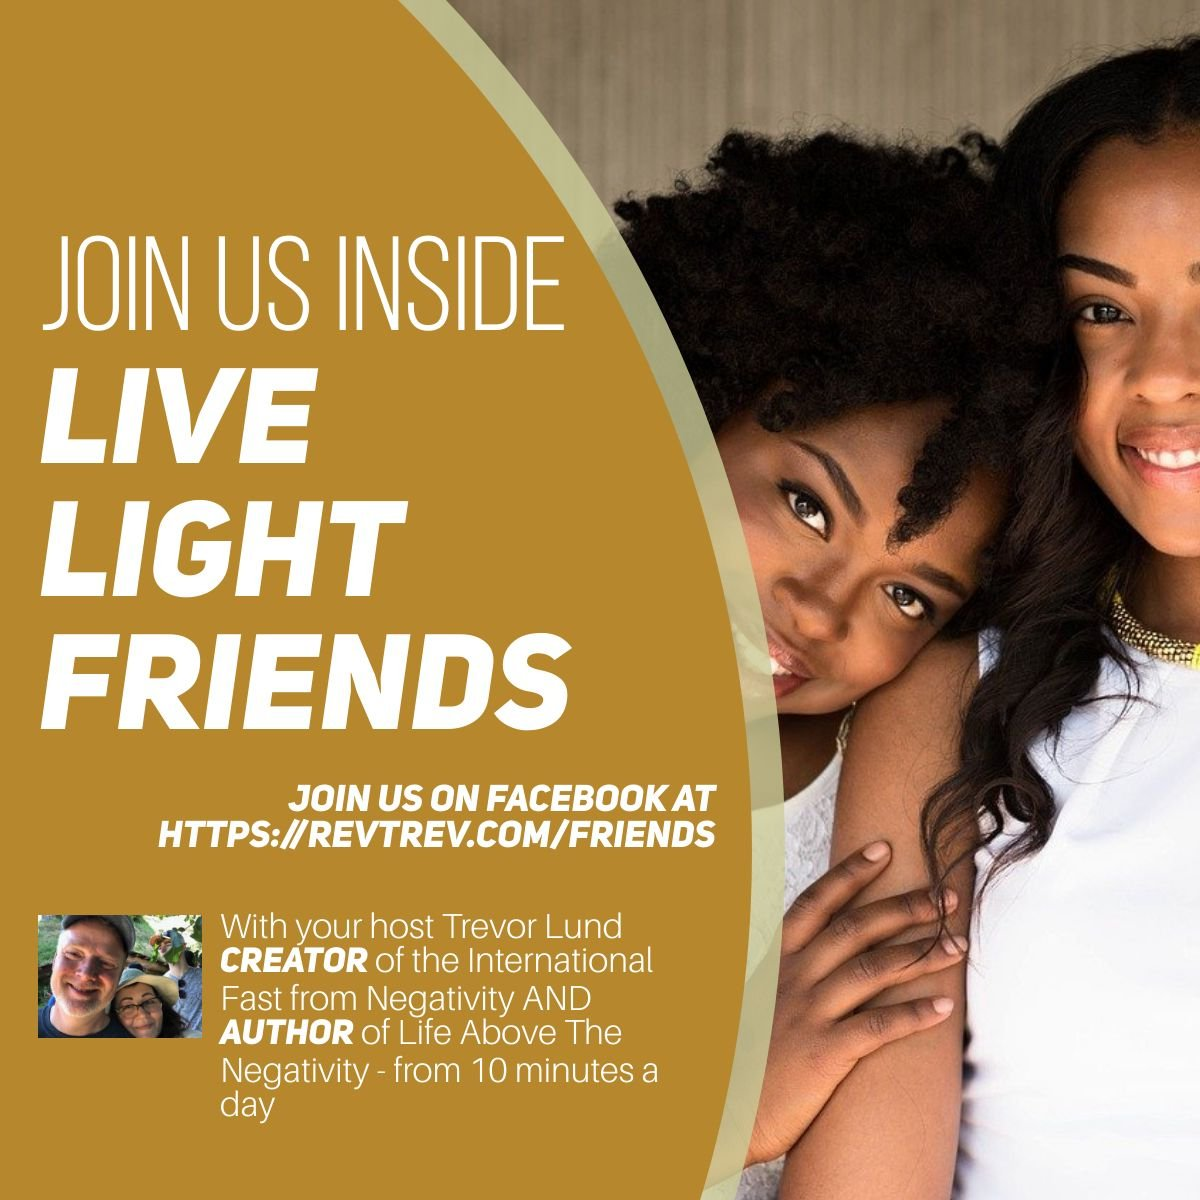 Welcome to Live LIGHT Friends via @trevorlund